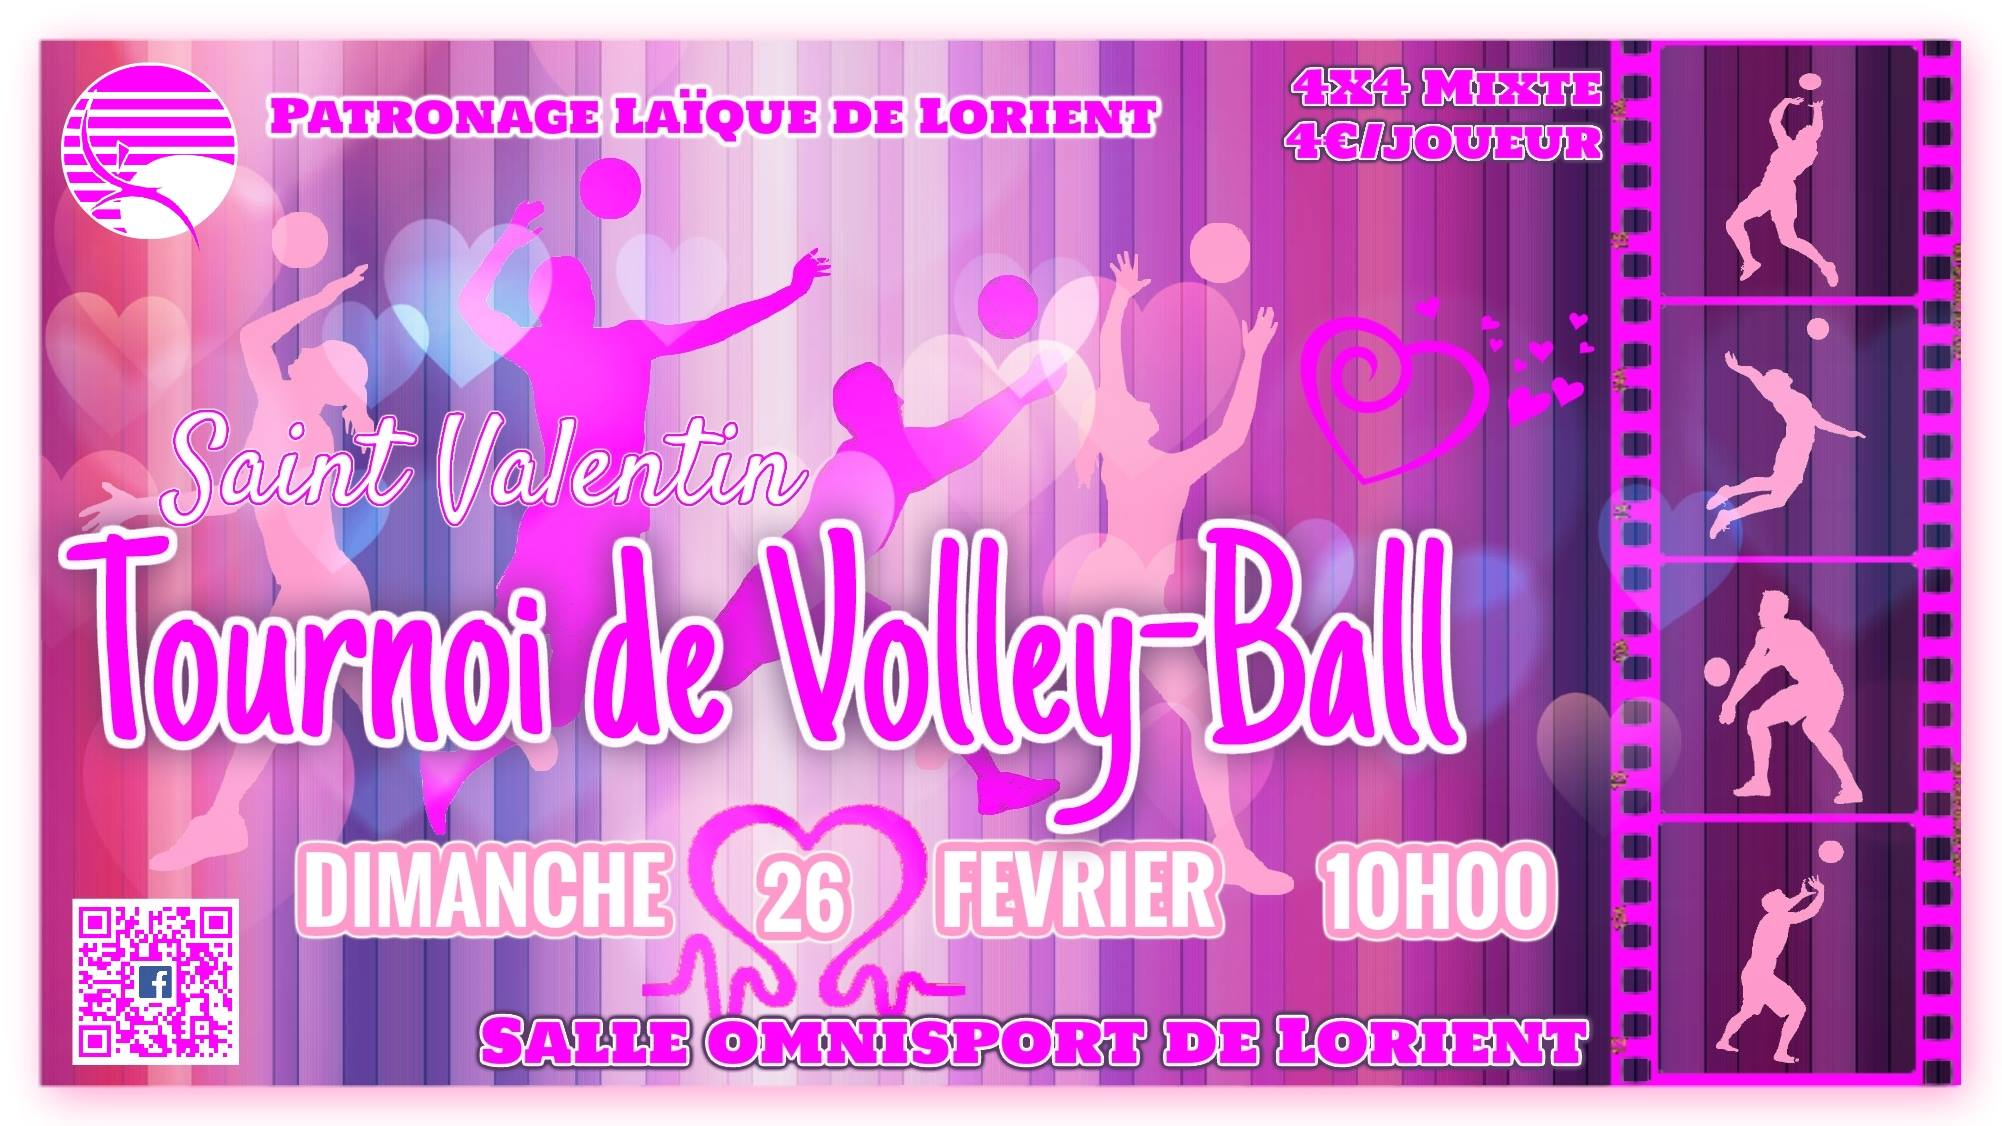 PLL saint valentin volleyball